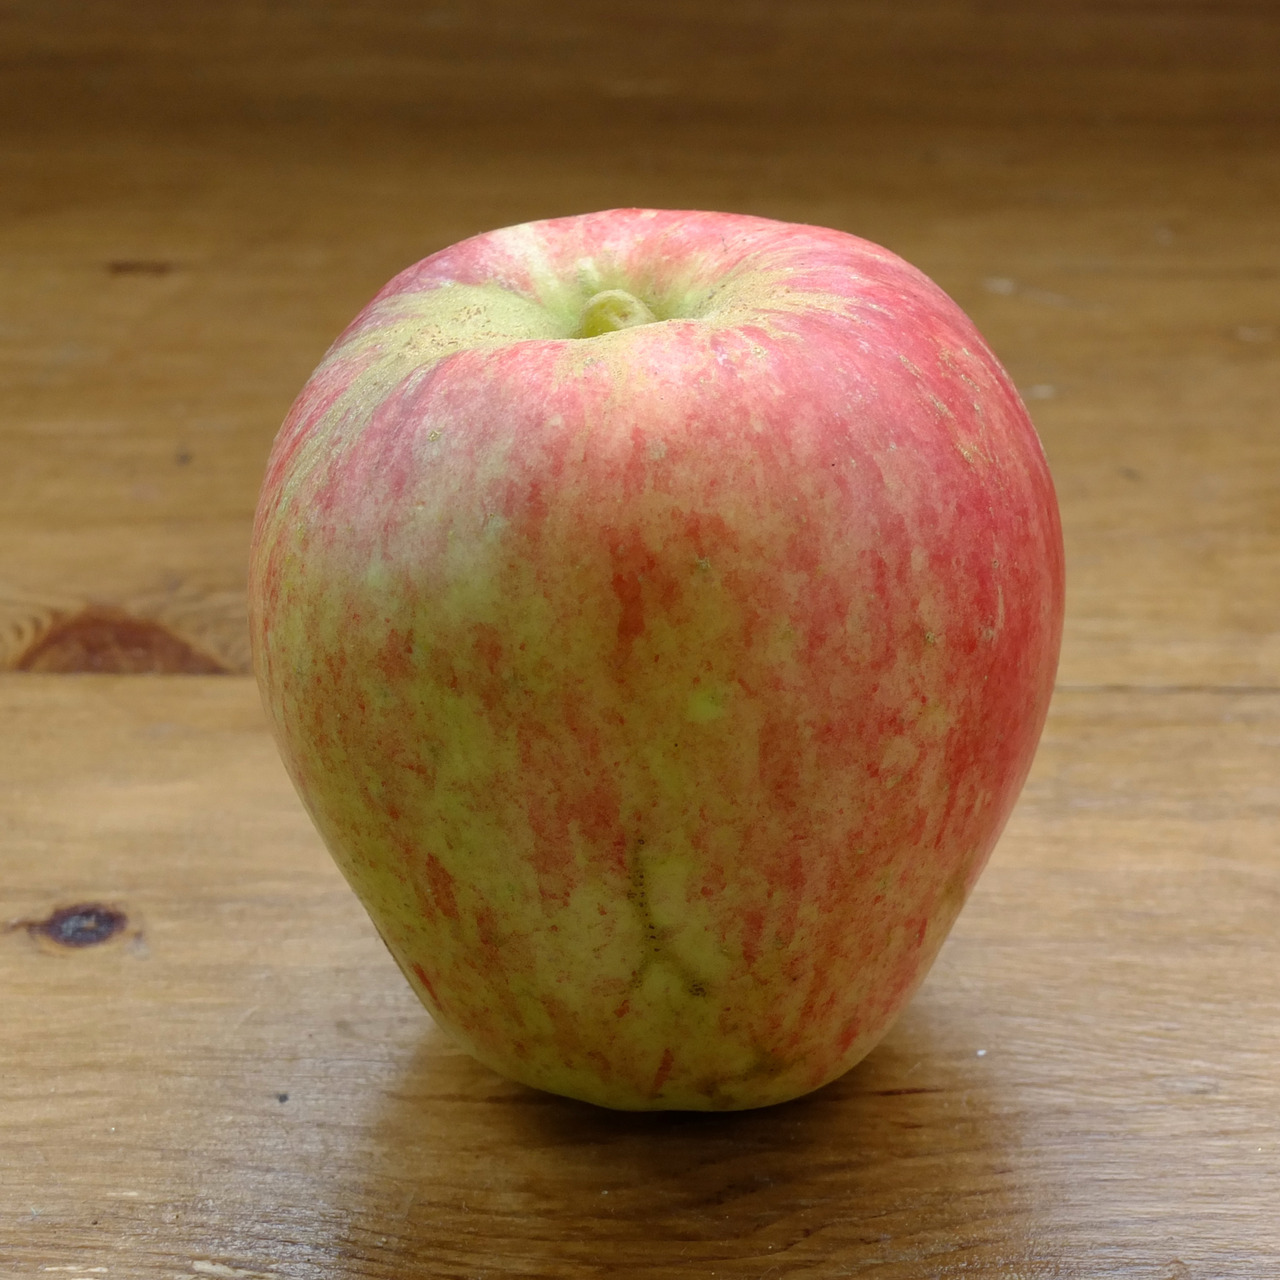 "The Bardsey Apple - a story for foodies everywhere… The Bardsey Apple is a bit of a rarity. Bardsey - Ynys Enlli in Welsh - is a small island off the tip of the Lleyn peninsular at the north end of Cardigan Bay. It has a religious history with a monastery having been founded there in the 13th Century. However, pre-Roman Celts are believed to have visited the island to pray and probably die while chasing the setting sun. In 1998 one of the wardens on the island used some windfall apples from under an old tree to bait a mist net, which is used to catch birds; the birds are then ringed for research purposes. He noted that the apples were disease free. Unable to identify the apples they were sent to the UK National Fruit Collection in Kent where it was determined that the fruit and tree were unique. Thus, the tree obtained the title of ""the rarest tree in the world""! From the original tree on the island it has been possible to produce further trees and a good friend was given one as a gift. This year it's produced a single fruit - the one in this post! The tree was probably pollinated by a neighbours bees so it is keeping a very tight grip on its Welsh heritage. The apple is very tasty, slightly tart, with a good crunch. This one may have needed a little more time on the tree.  Read much more here at the Bardsey Apple homepage…"